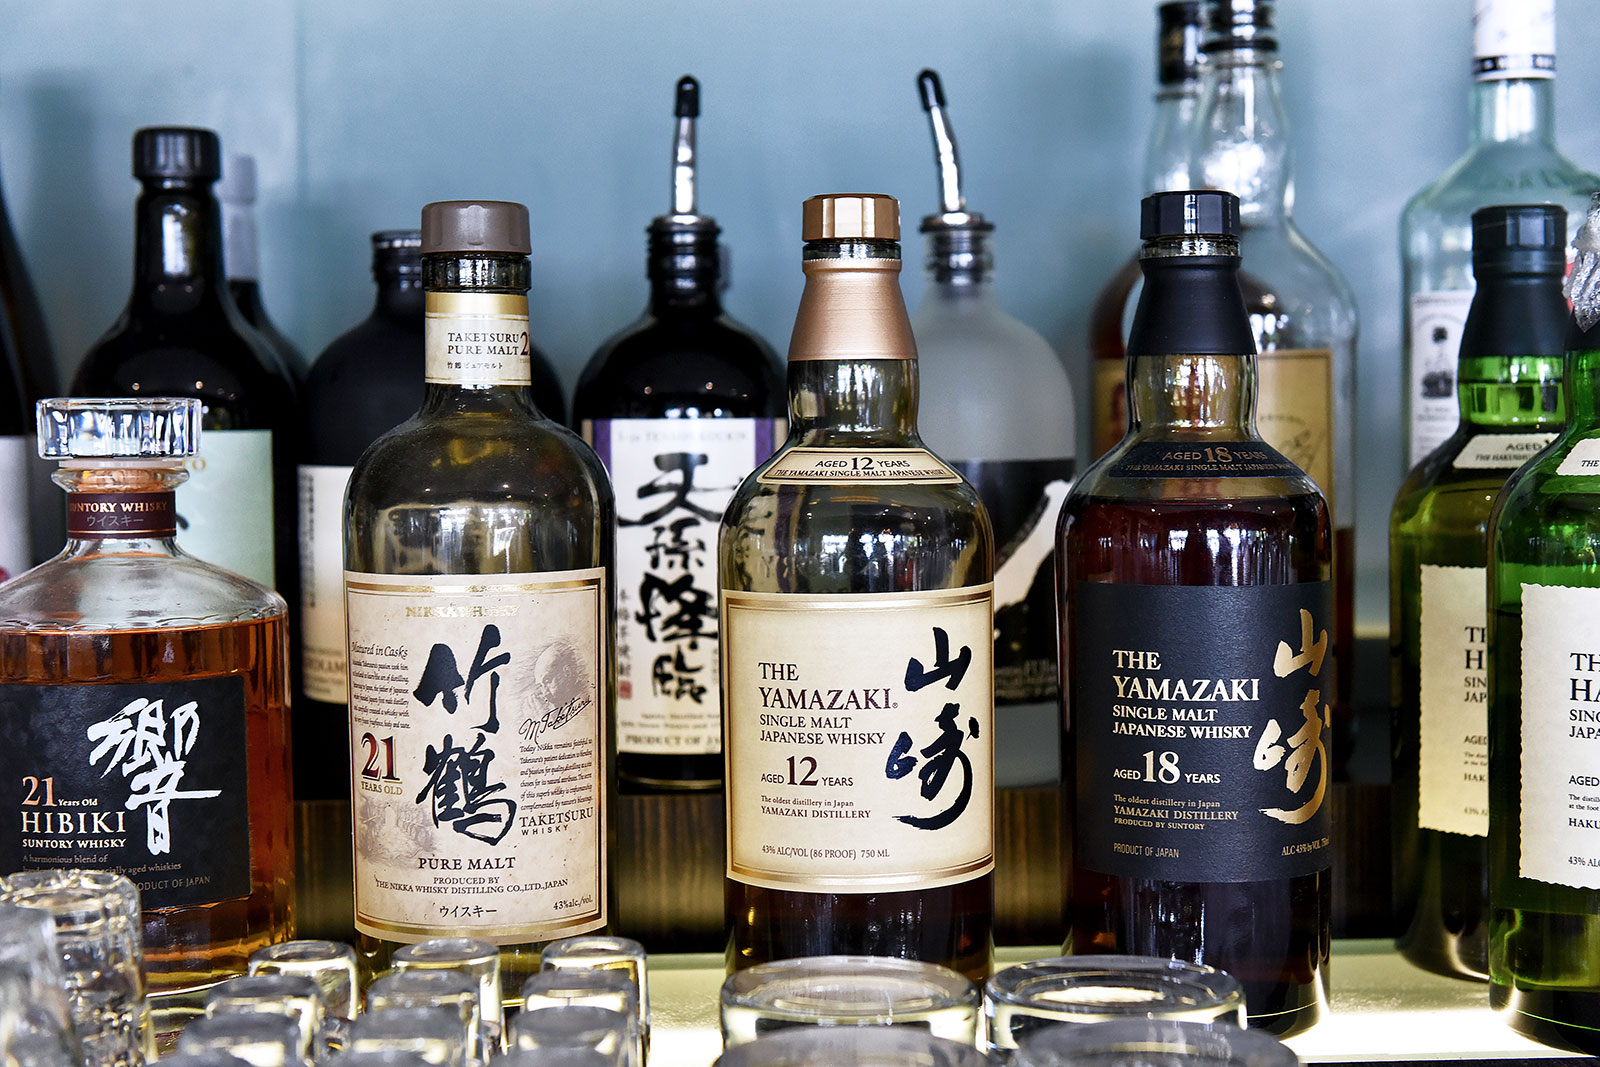 YAMAZAKI Single Malt Japanese Whiskys